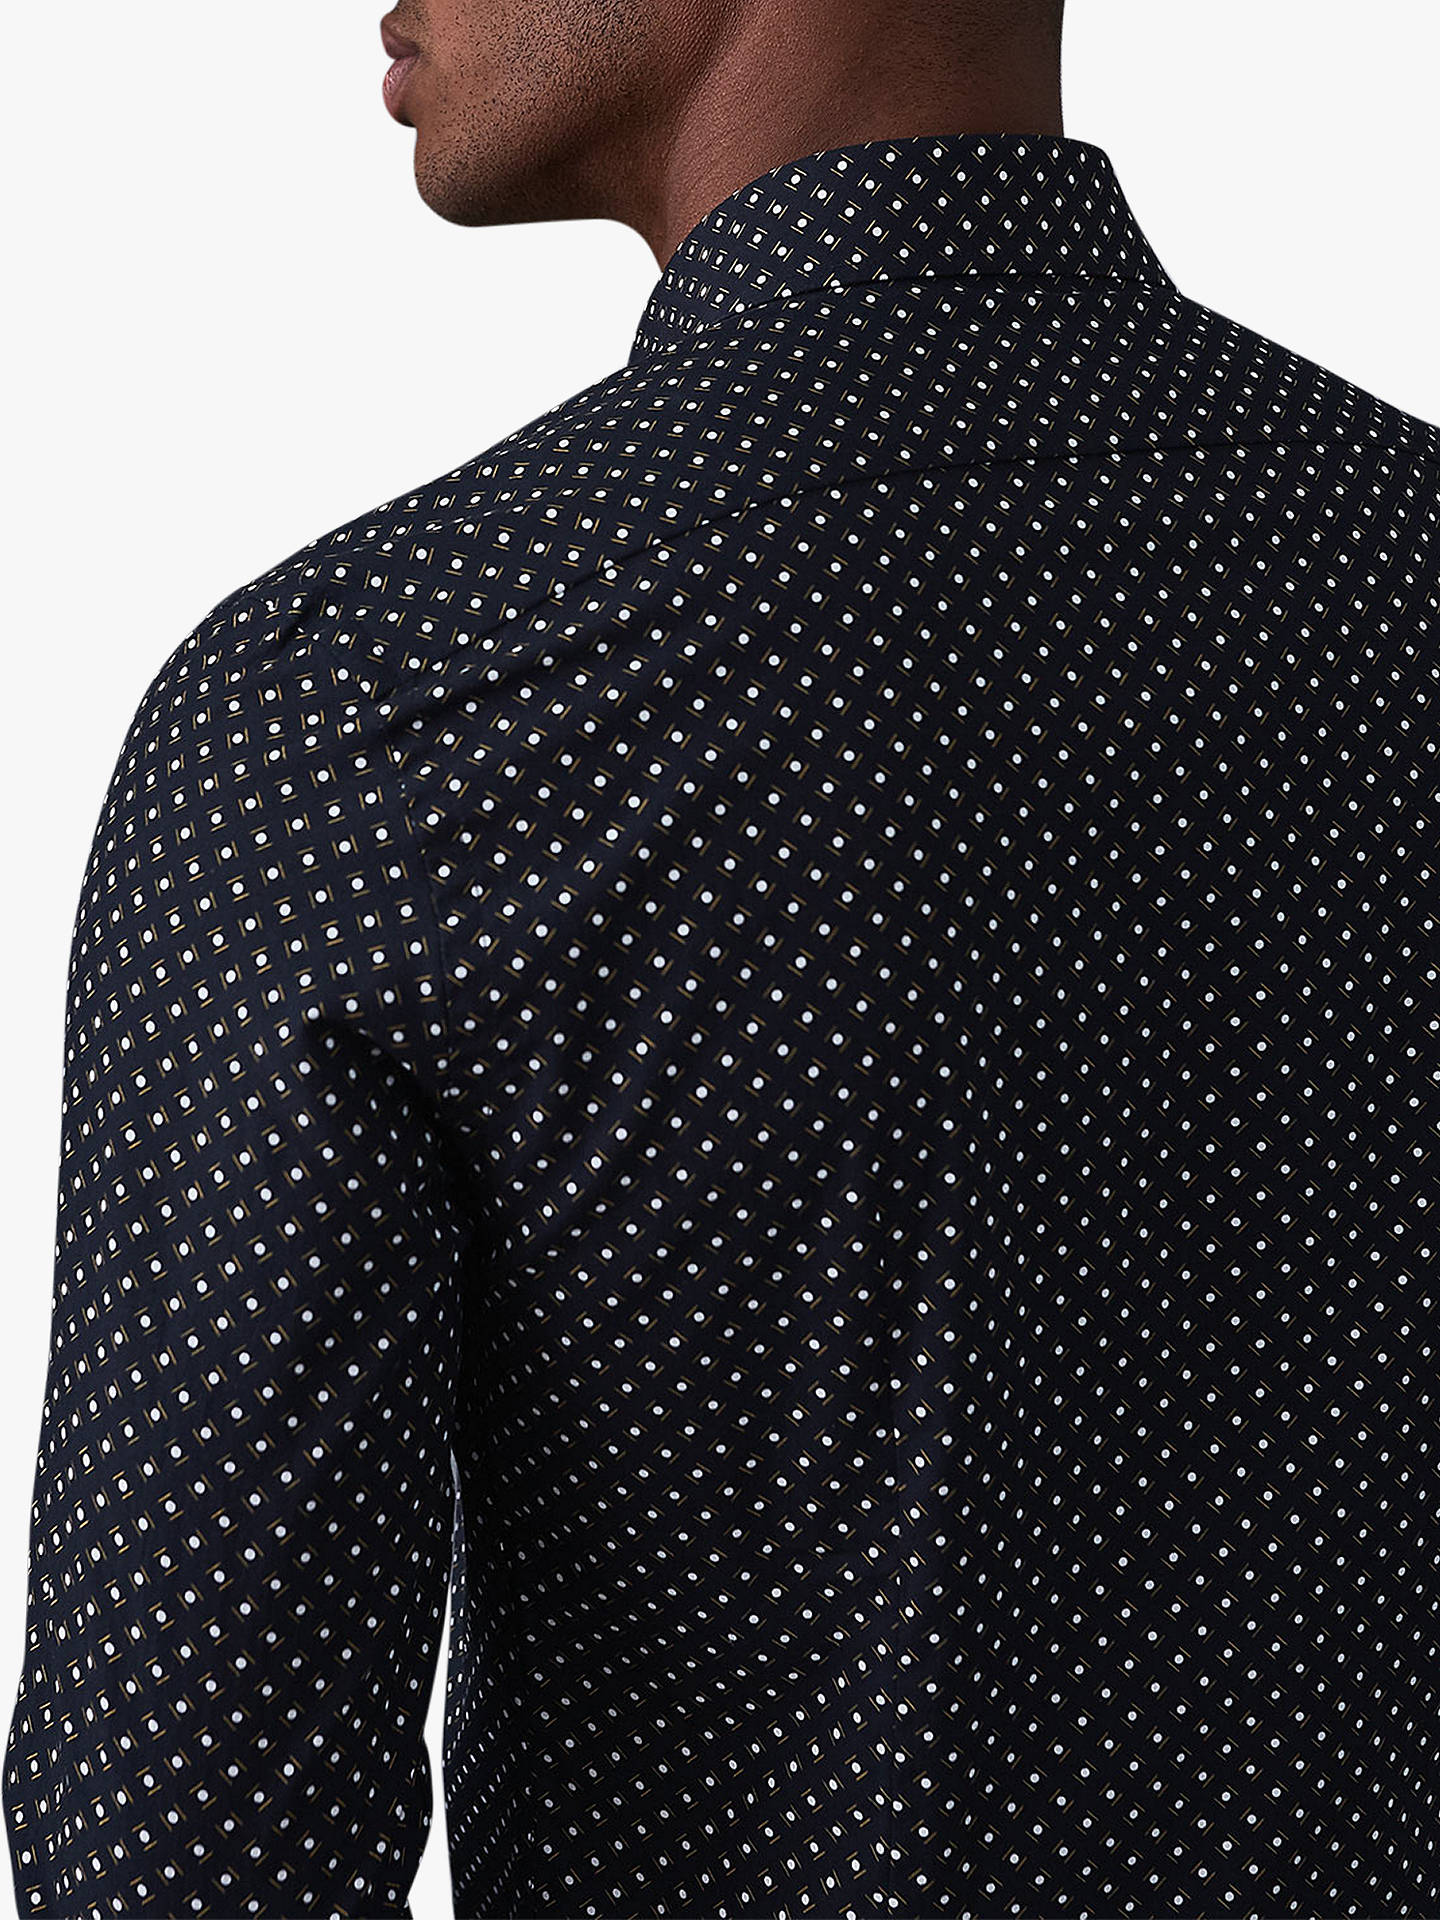 BuyReiss Kesler Geometric Slim Fit Print Shirt, Blue, S Online at johnlewis.com